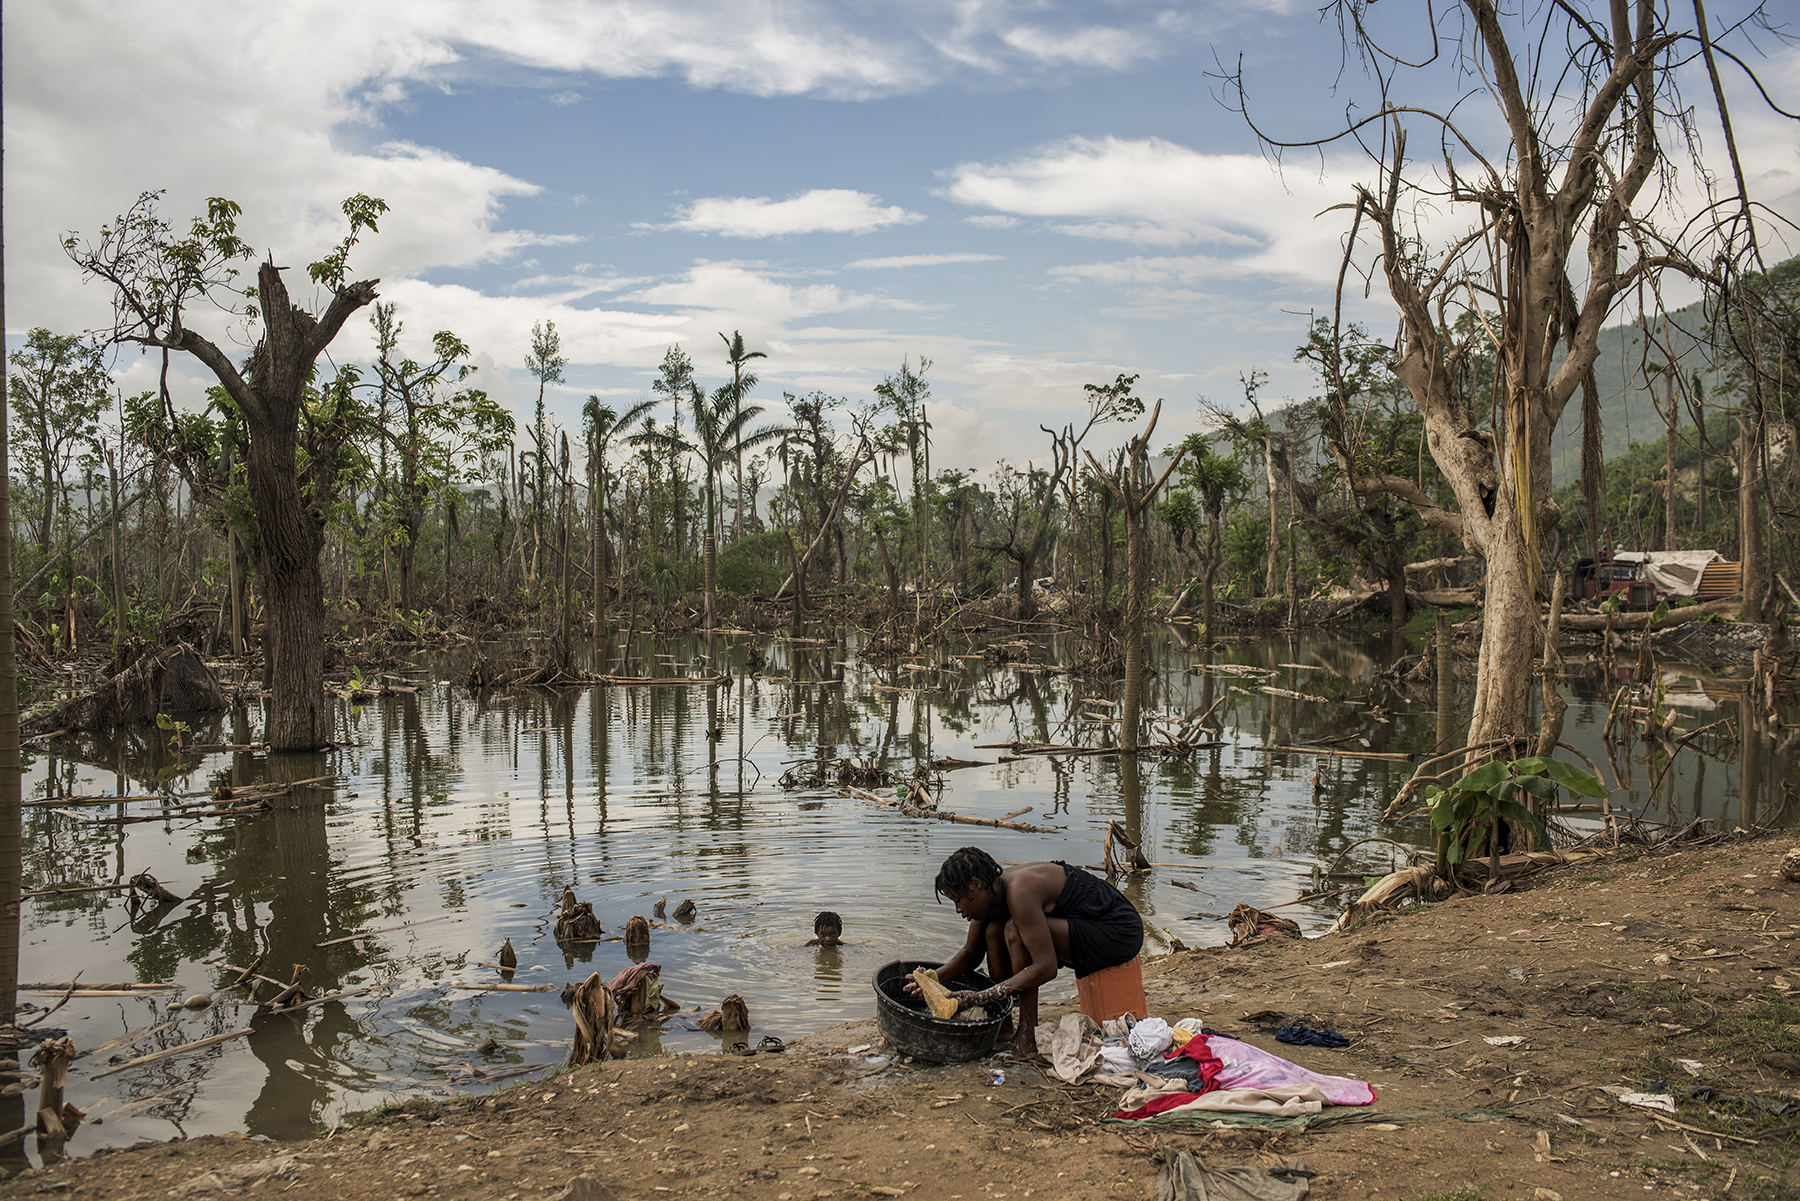 Haiti, Les Cayes, 16 November 2016, Surrounded by the destruction caused by Hurricane Matthew, Pharana Pierre washes clothes while her daughter Carla Michele, 6, plays in in the water.